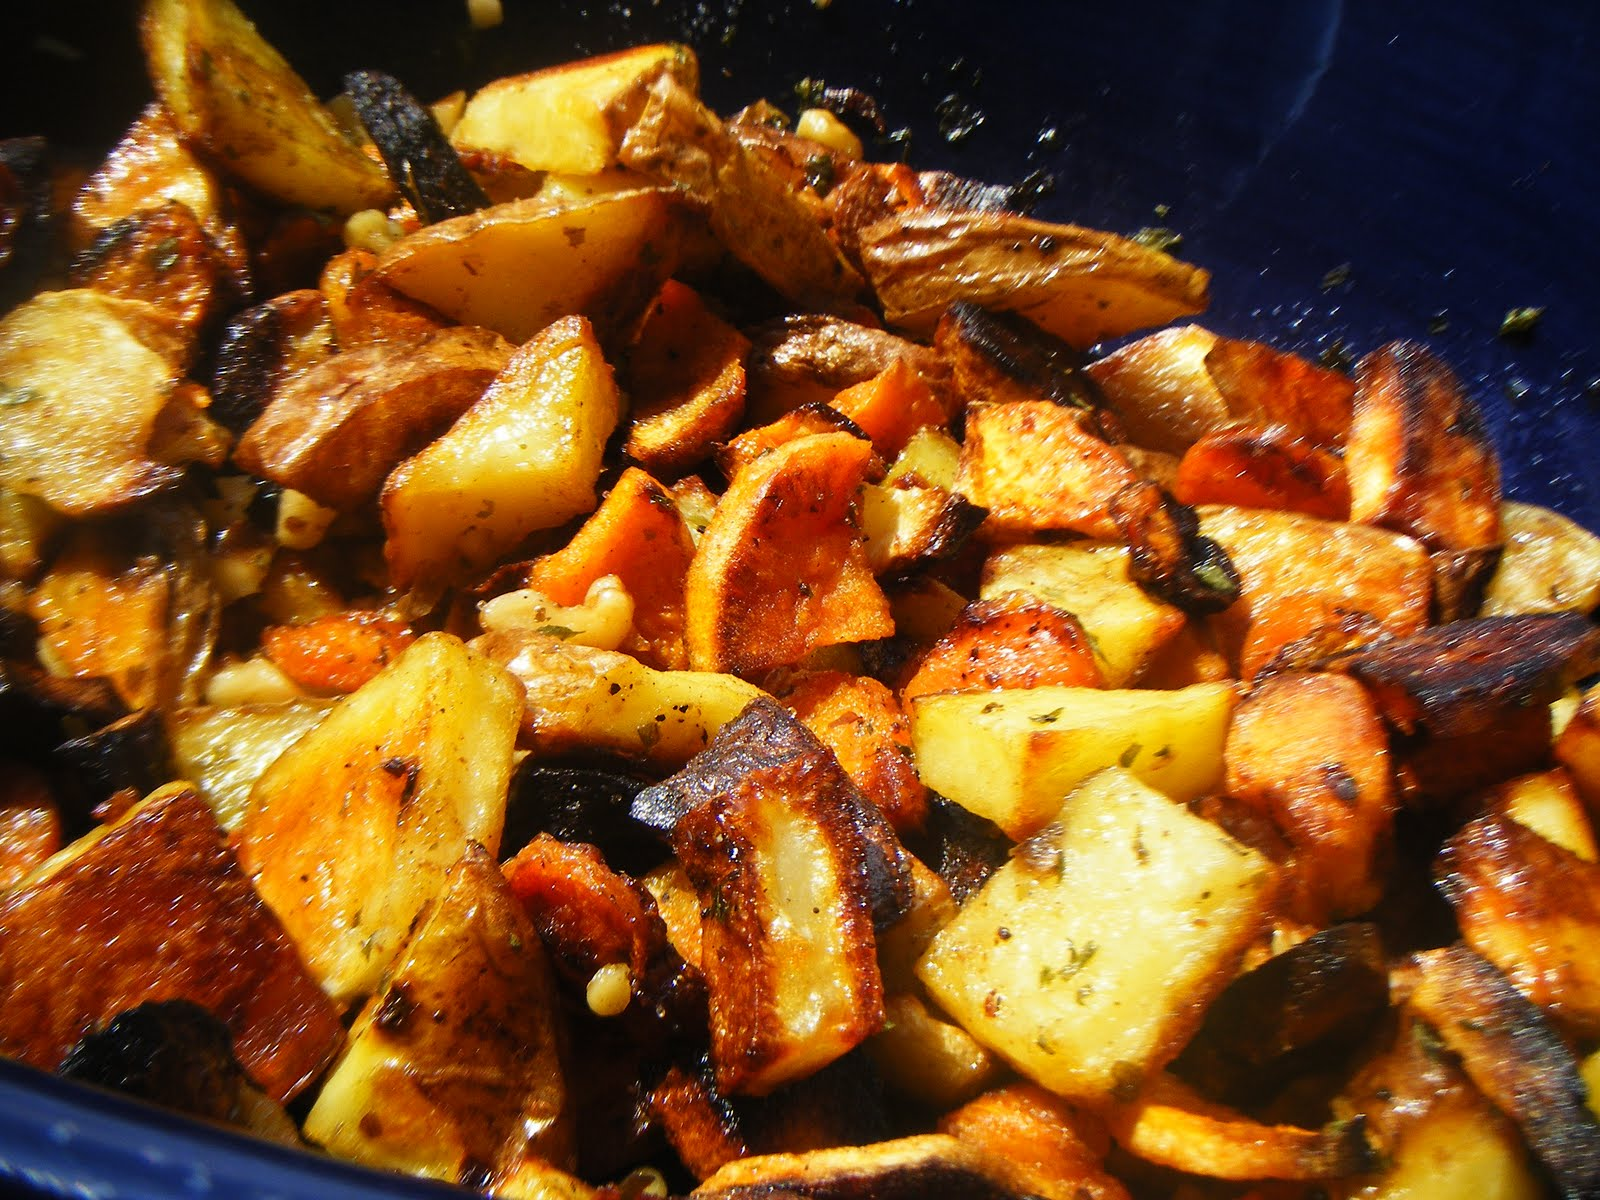 ... oven-roasted ROOTS vegetables and garlic — perfect for a cold winter